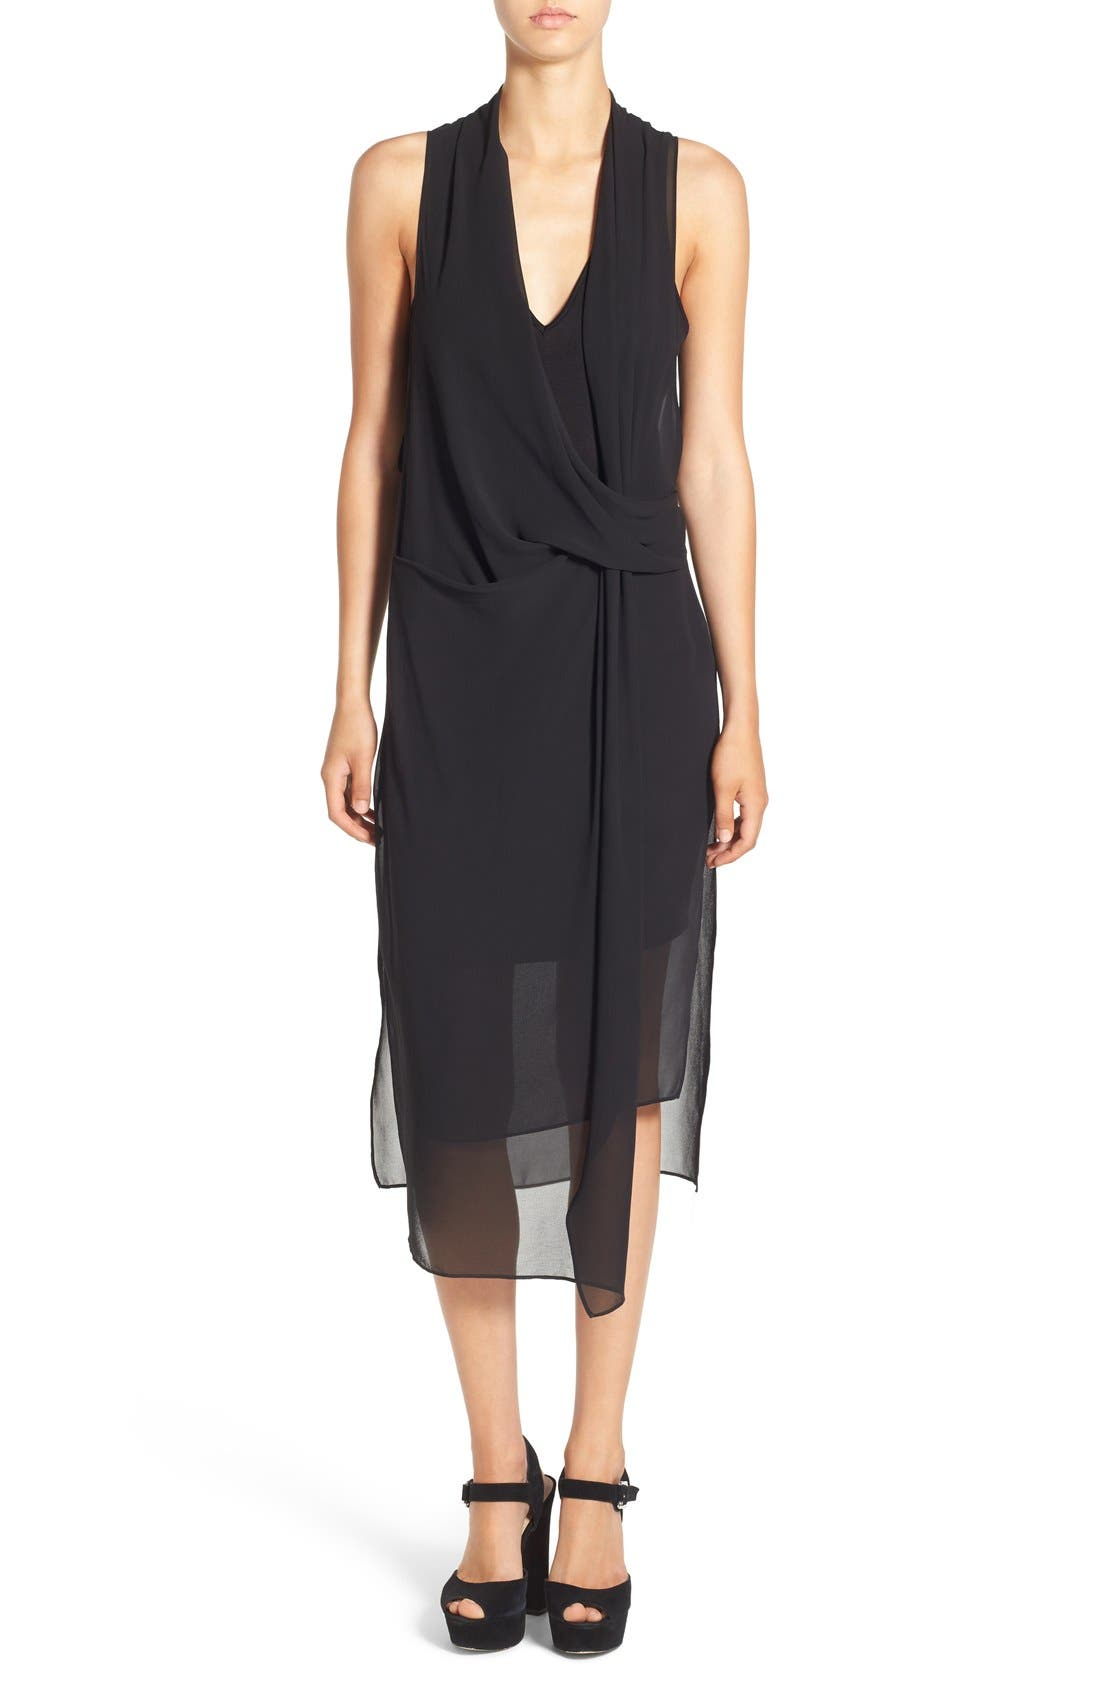 Alternate Image 1 Selected - ASTR Gathered Front Layer Dress